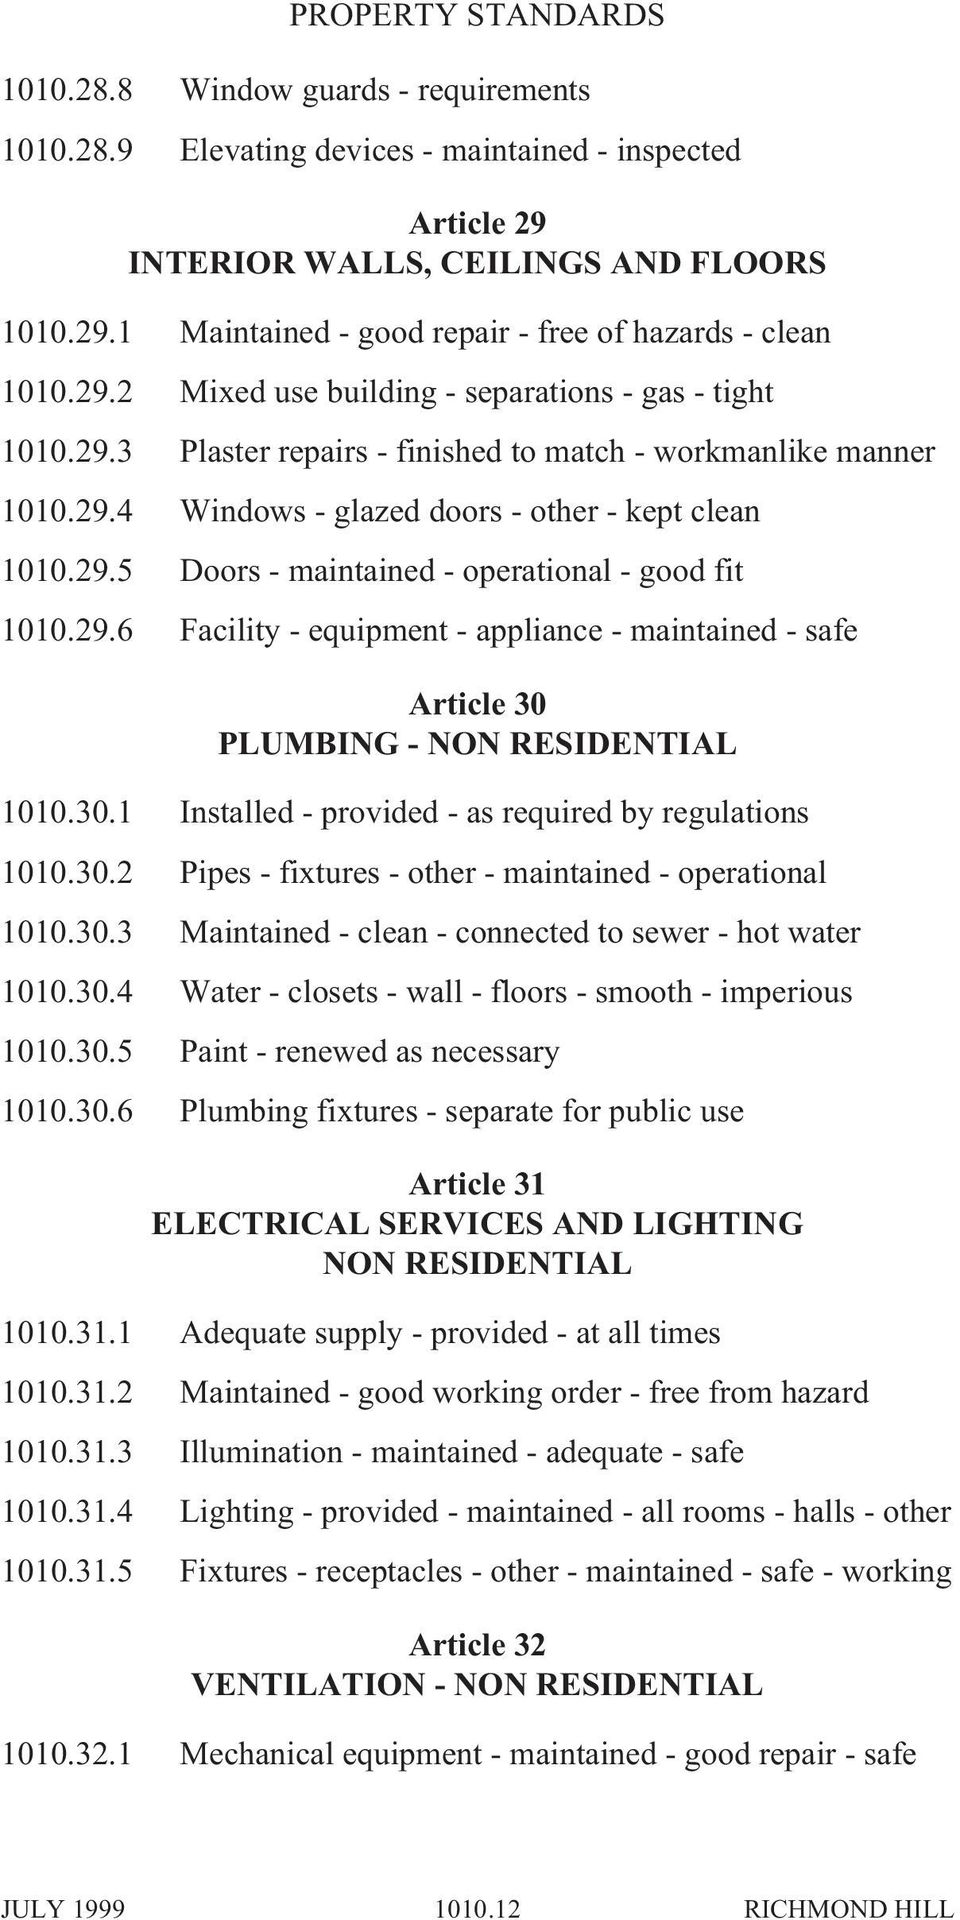 29.6 Facility - equipment - appliance - maintained - safe Article 30 PLUMBING - NON RESIDENTIAL 1010.30.1 Installed - provided - as required by regulations 1010.30.2 Pipes - fixtures - other - maintained - operational 1010.